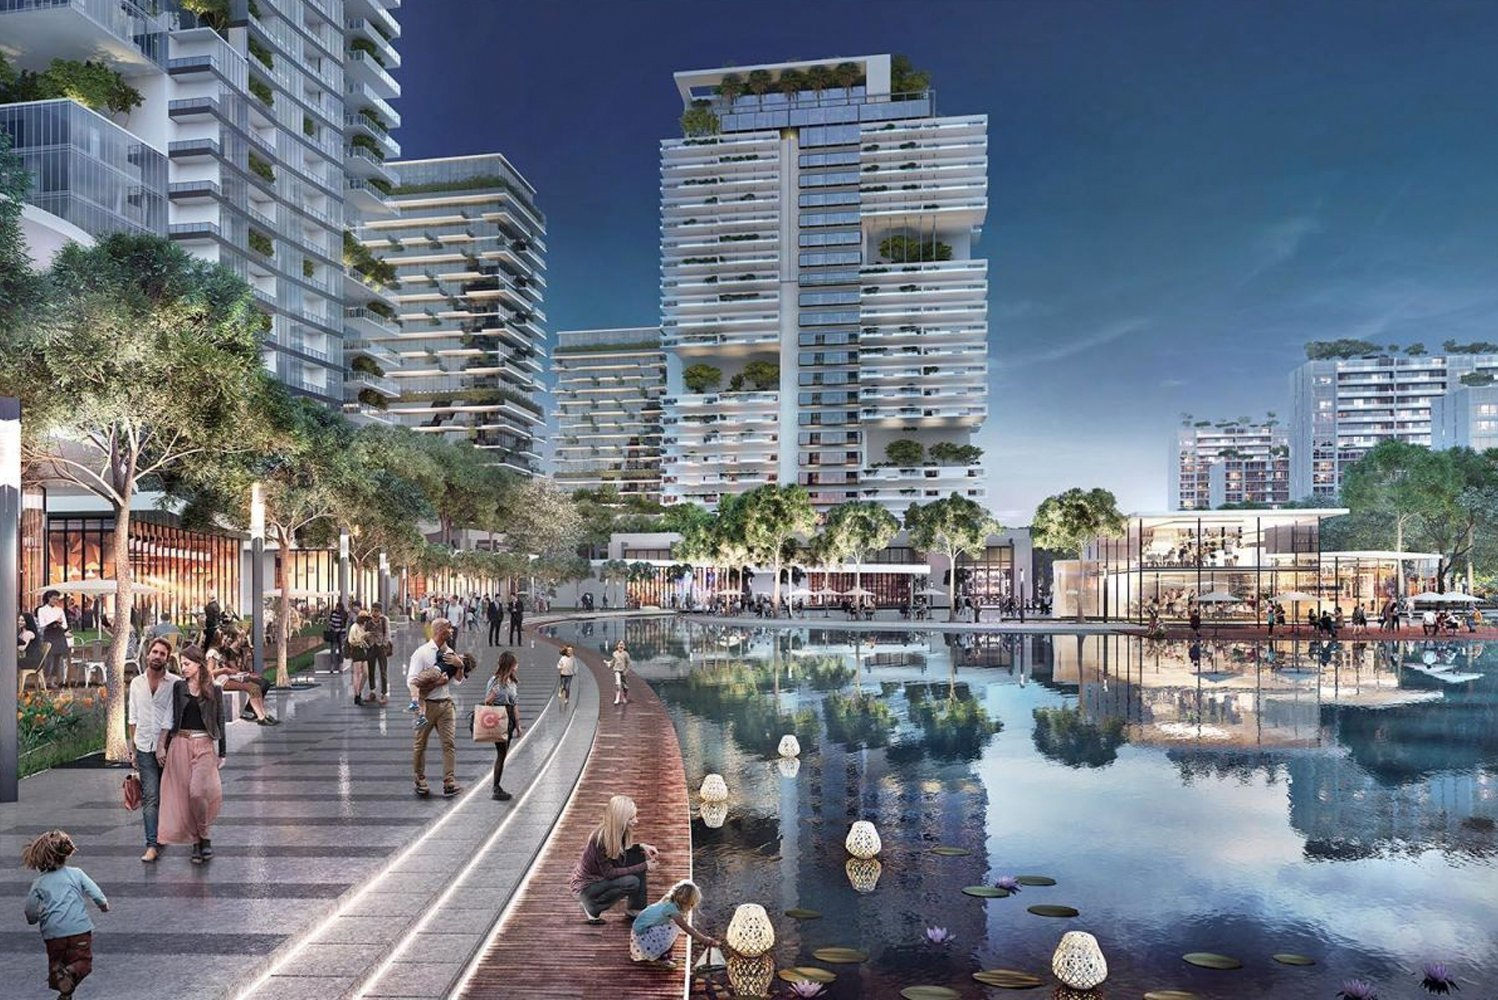 Broadway Malyan was commissioned by Filinvest Land to masterplan the 288-hectare district.